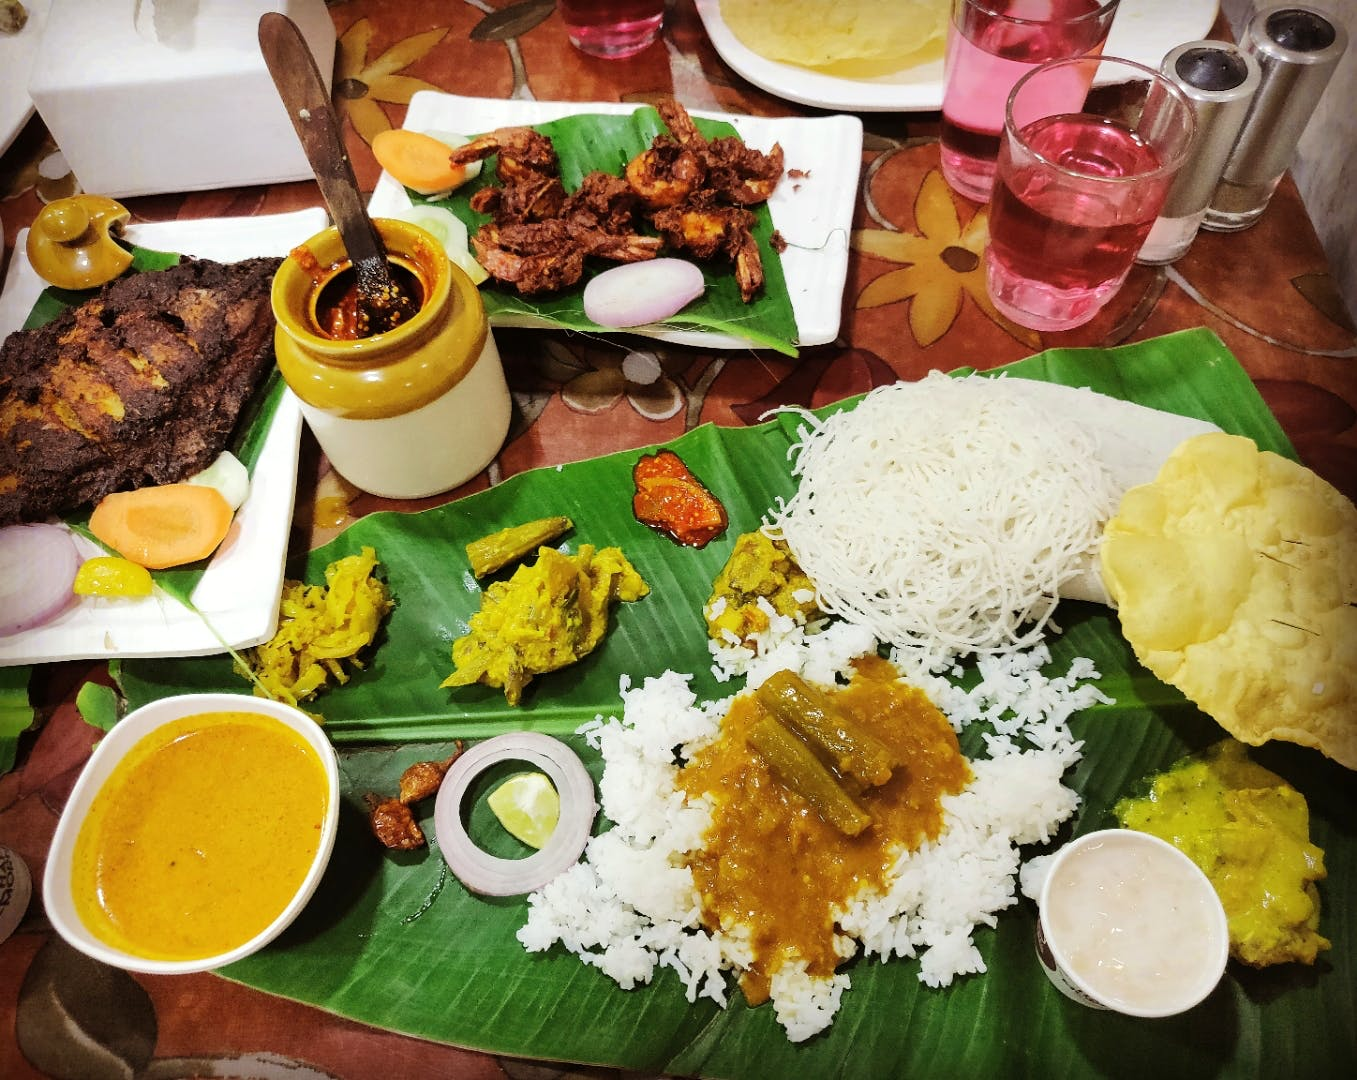 Unlimited Thali & Fried Prawns: Go Here For Authentic Kerala-Style Food